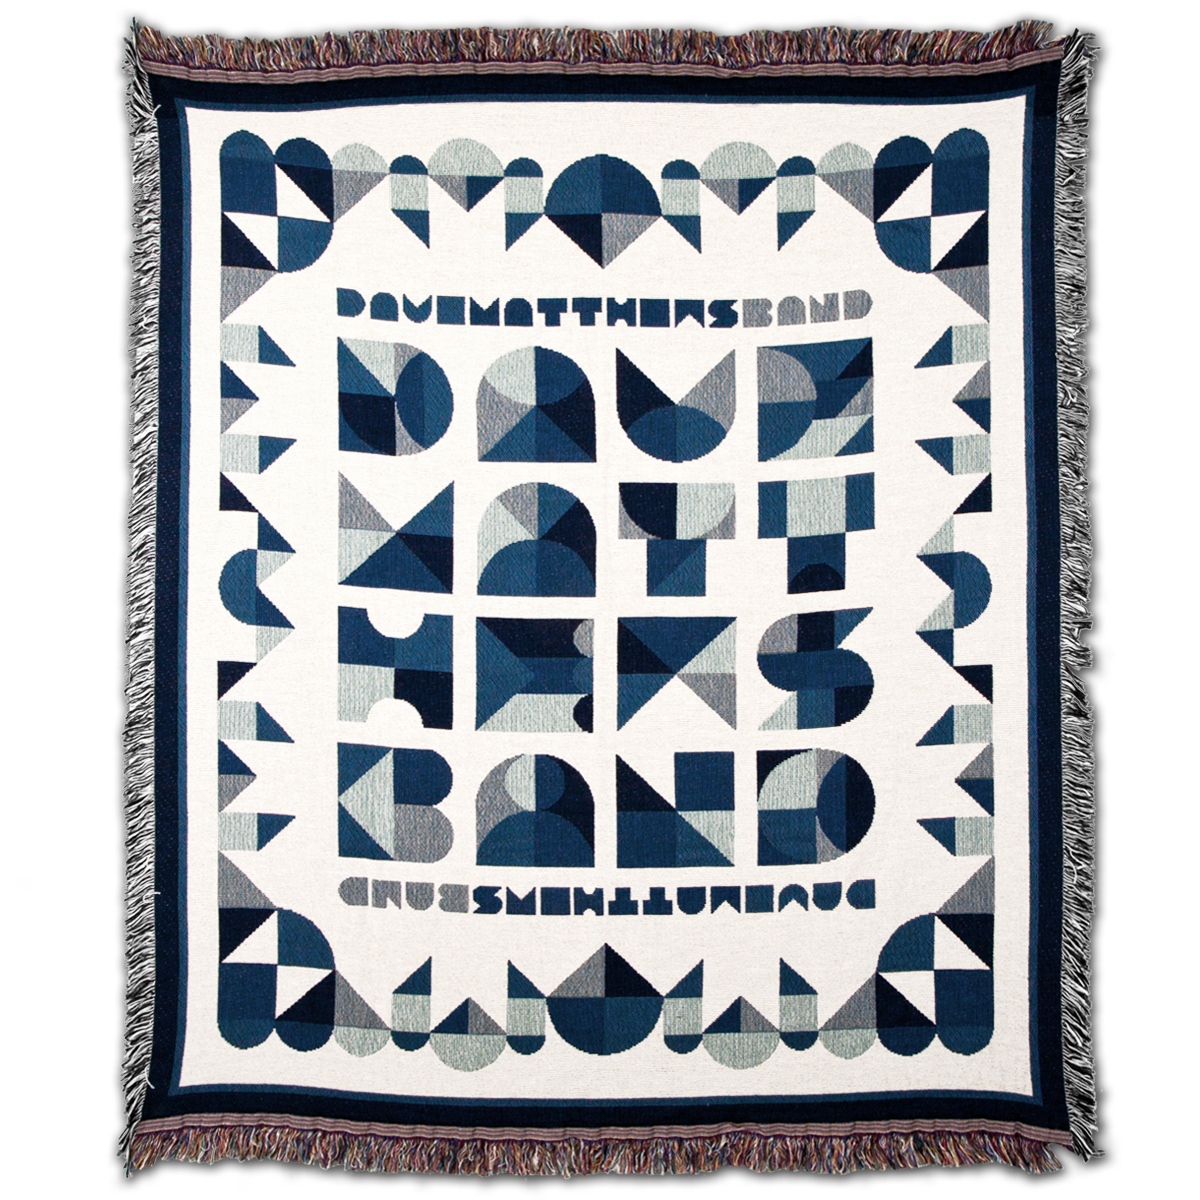 DMB 2013 Summer Throw Blanket